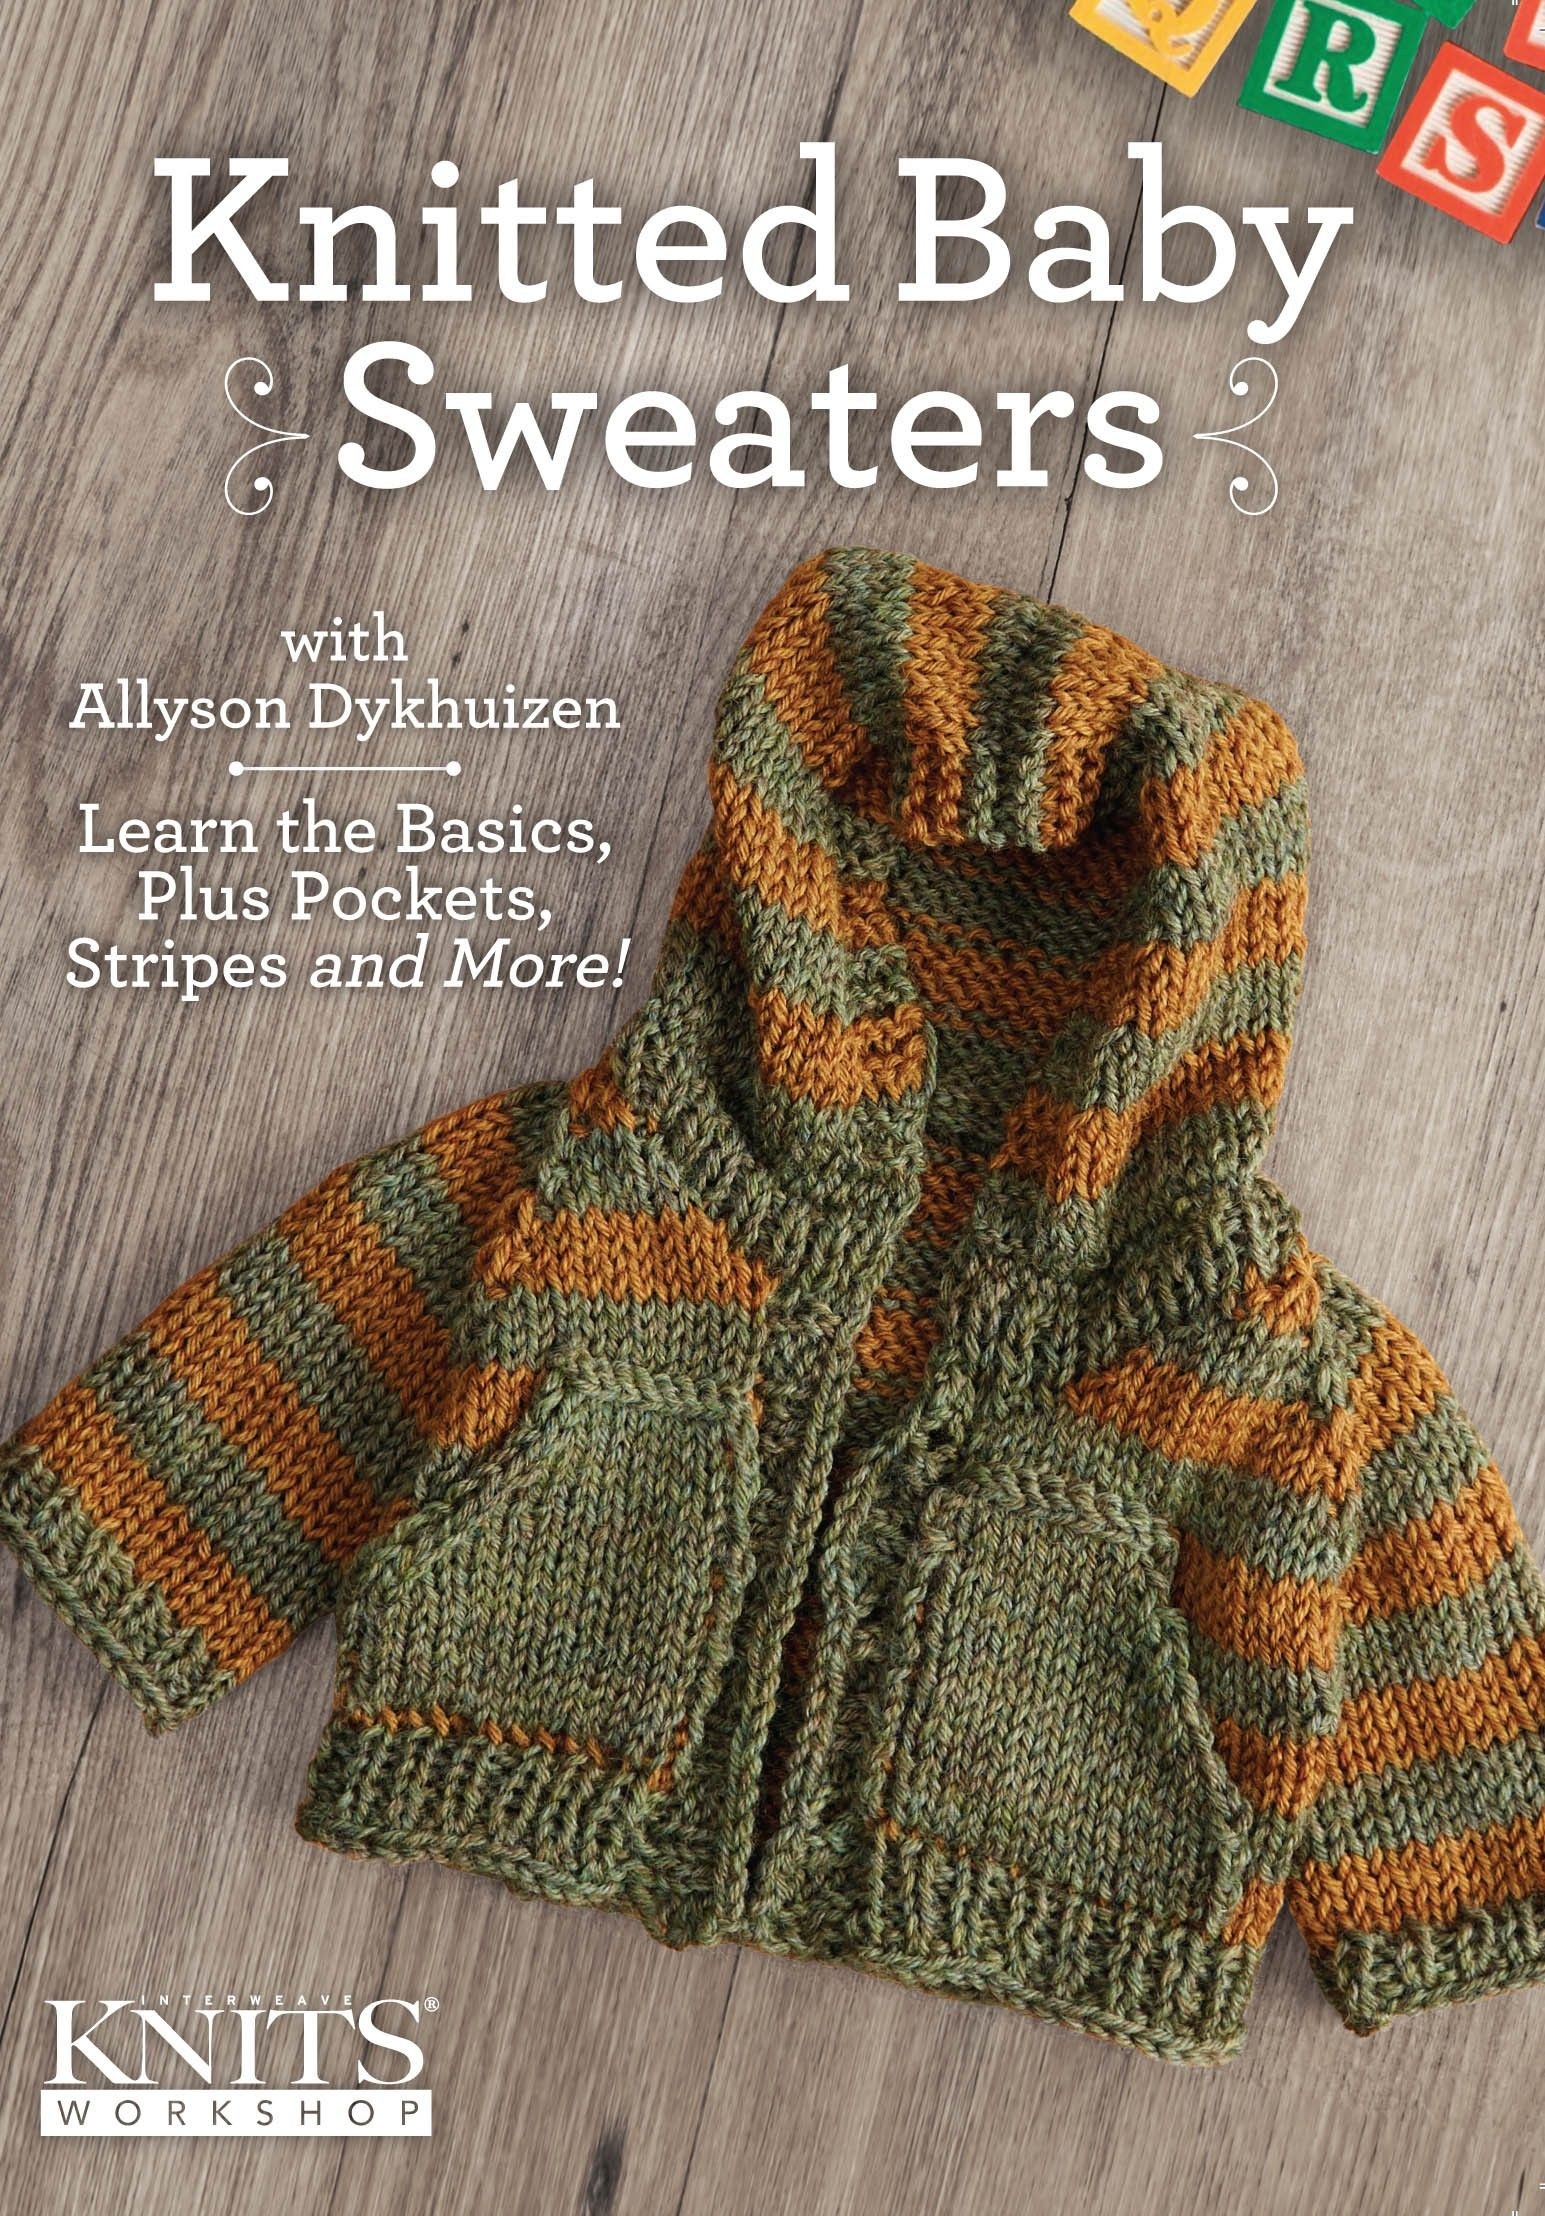 cd6d84448 Knitted Baby Sweaters Video Download